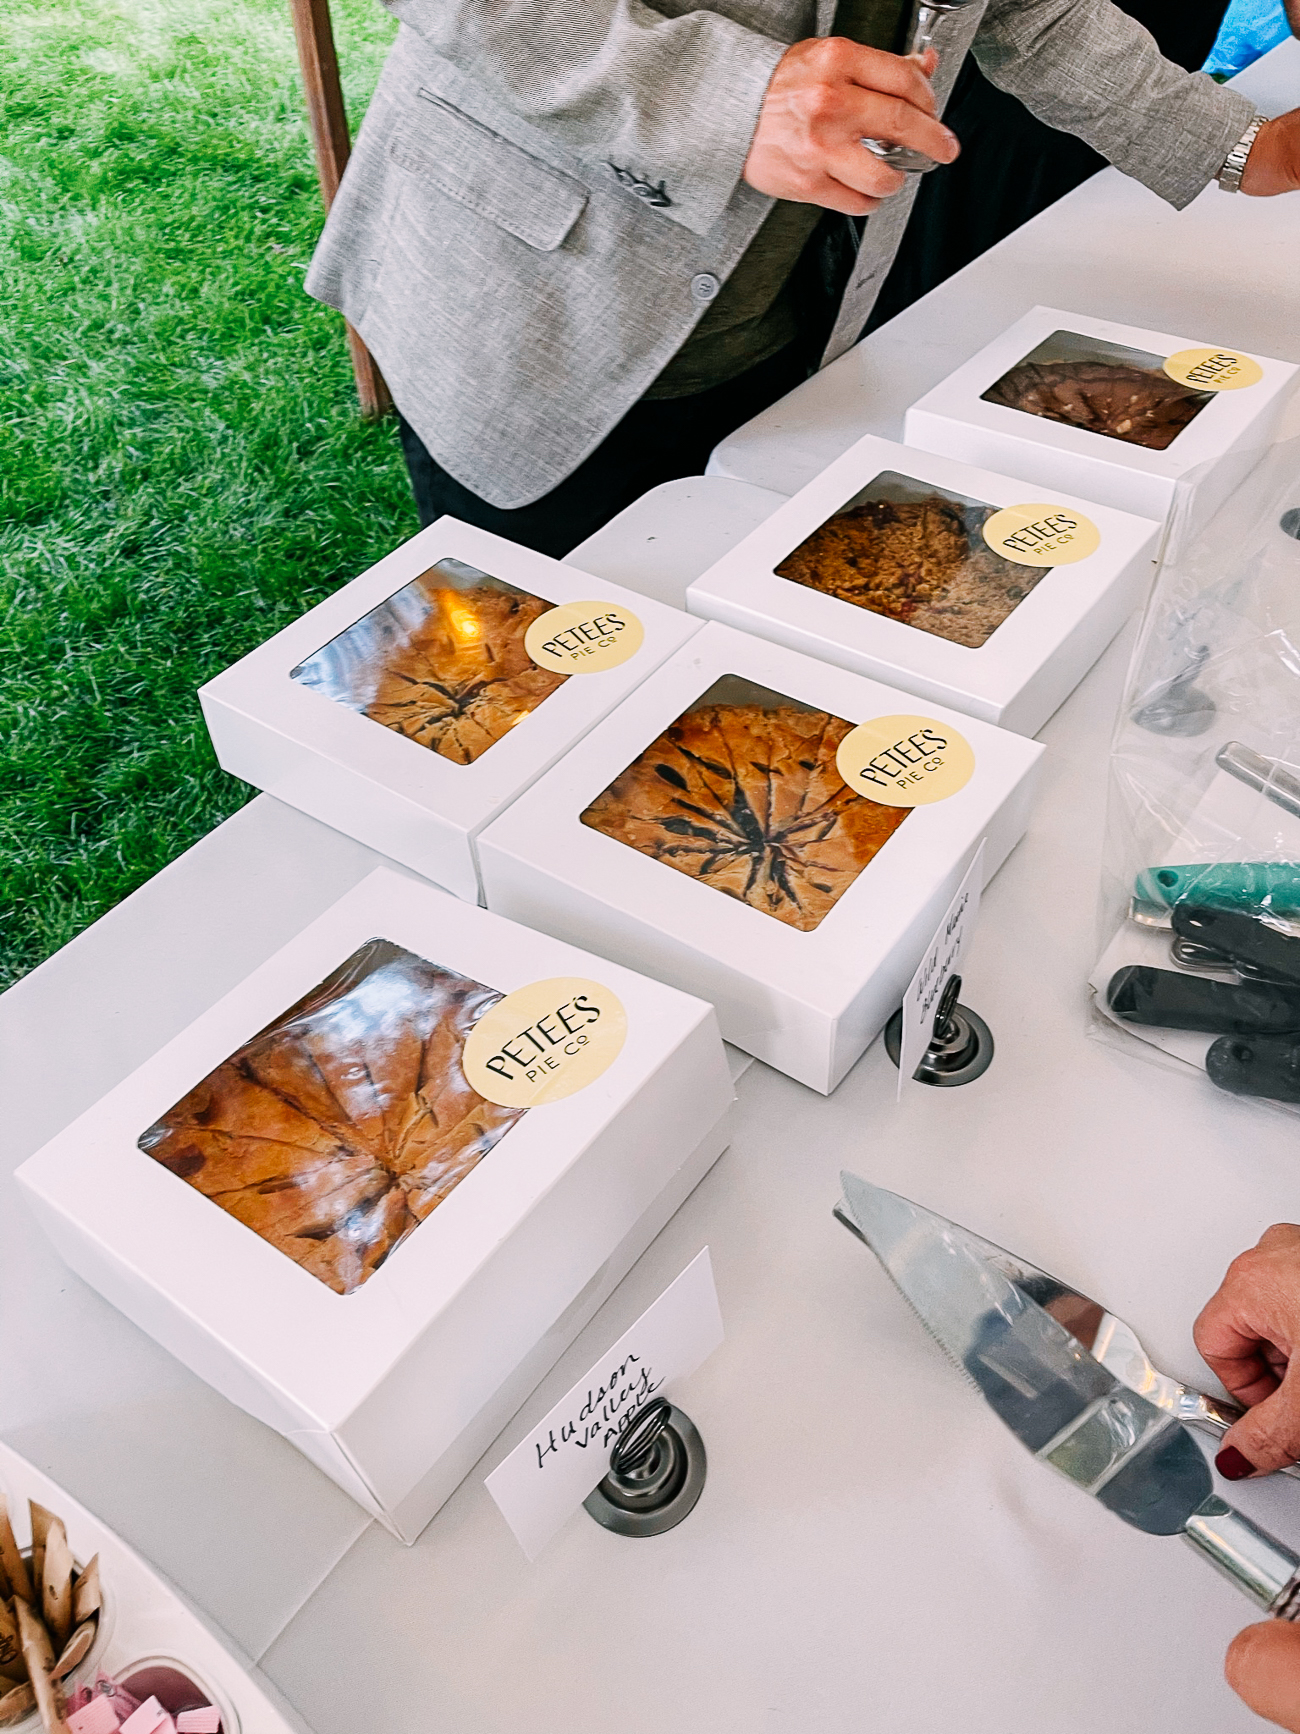 Petee's Pies in boxes